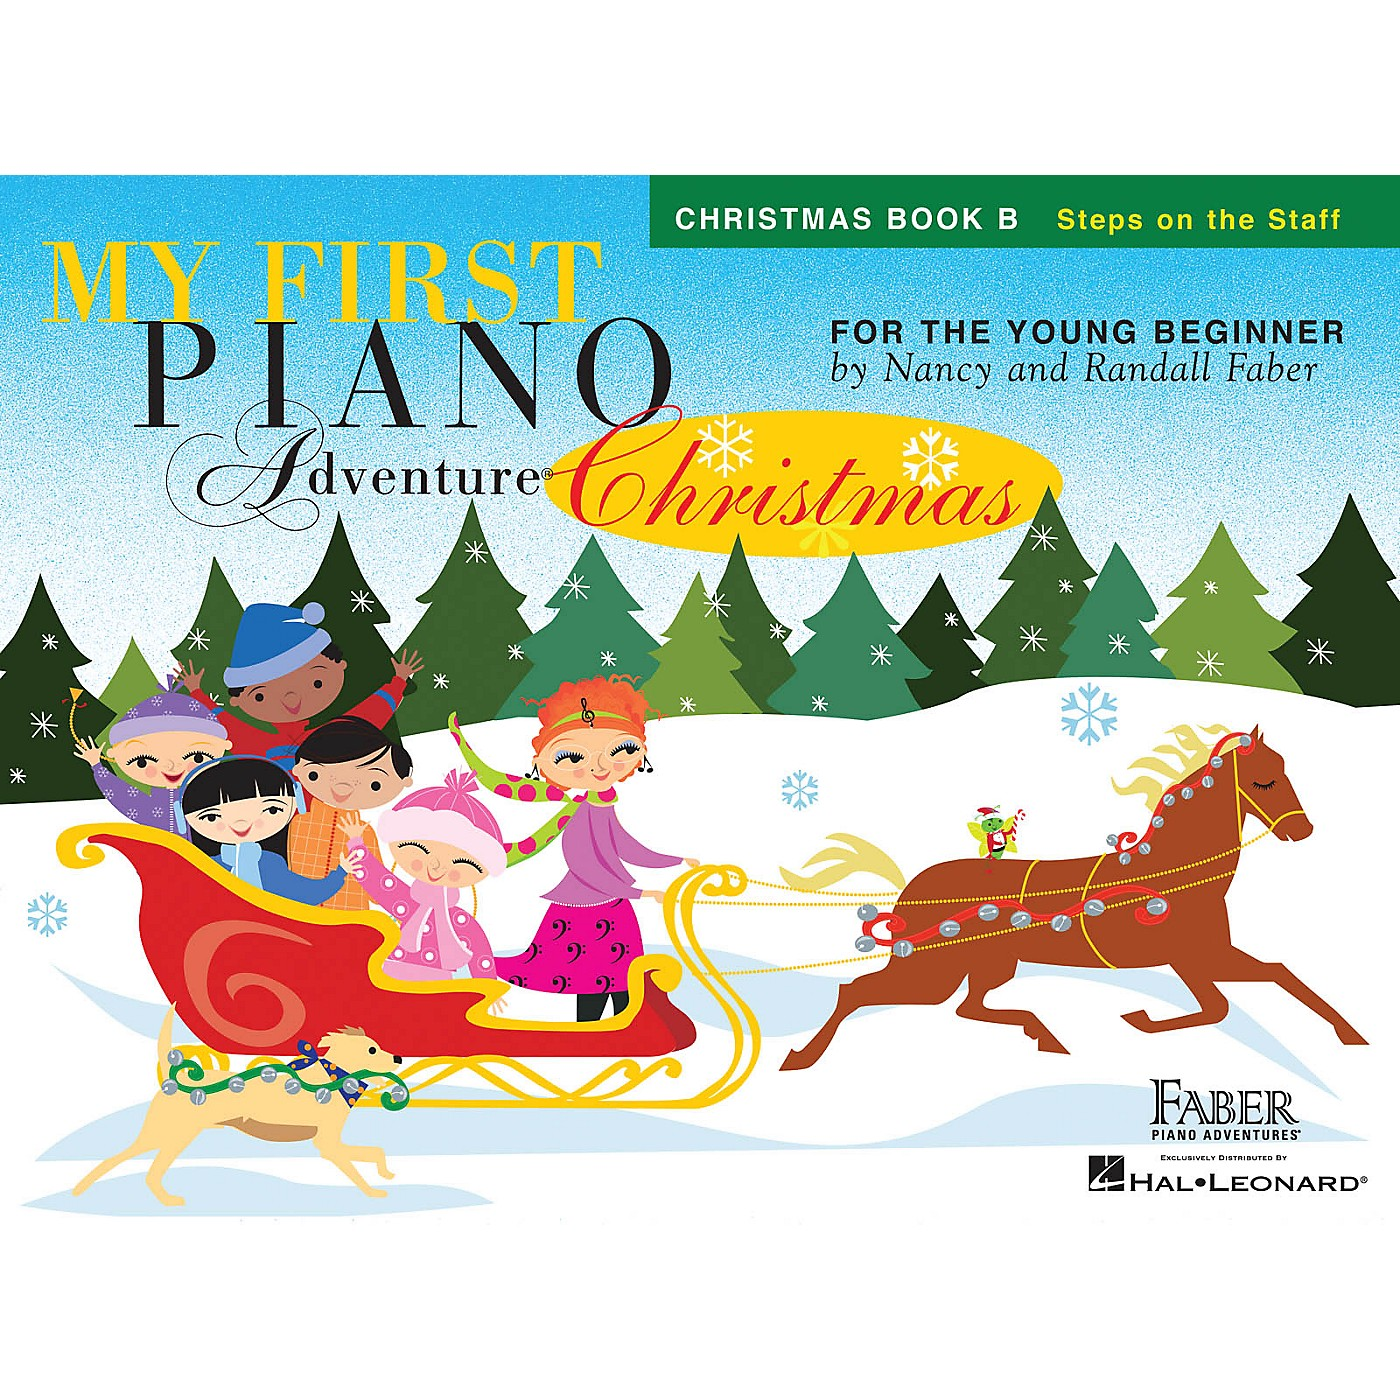 Faber Piano Adventures My First Piano Adventure Christmas - Book B Faber Piano Adventures by Nancy Faber (Level Early Elem) thumbnail